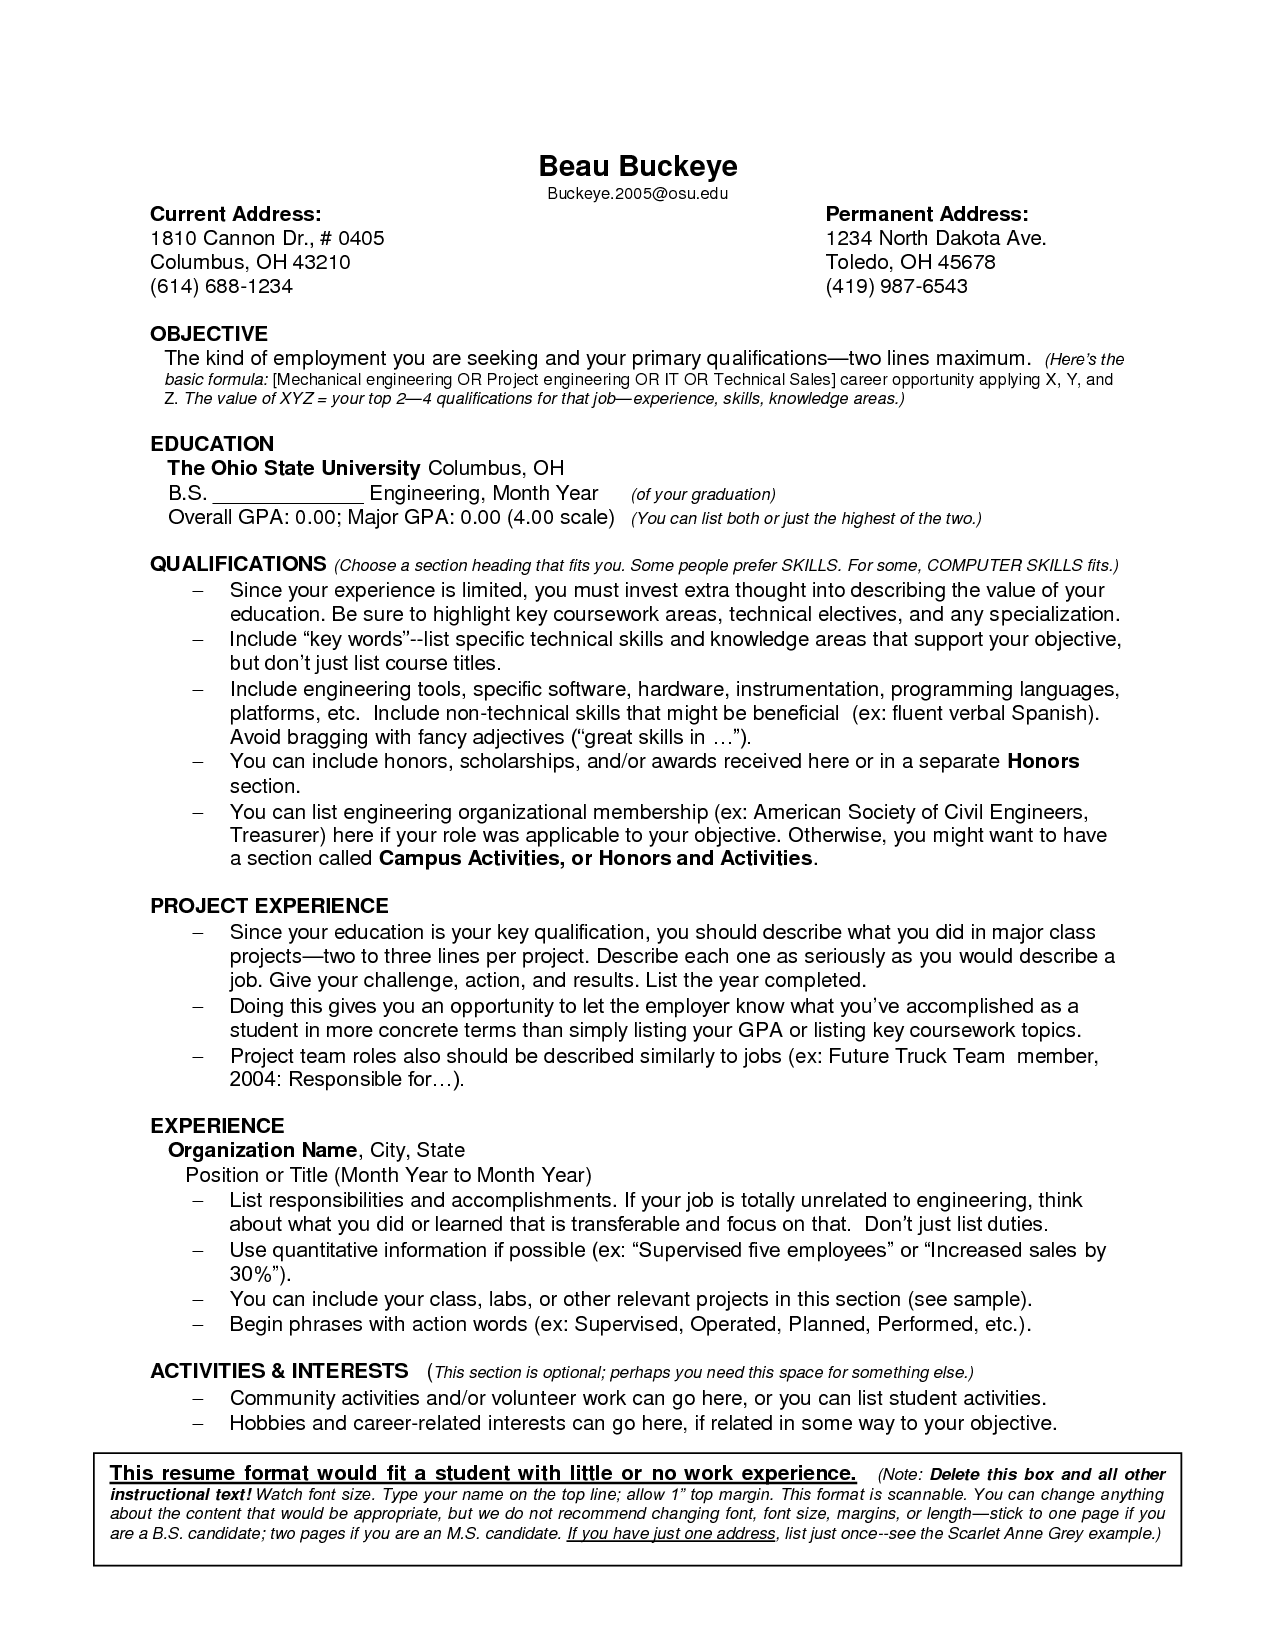 resume format without experience